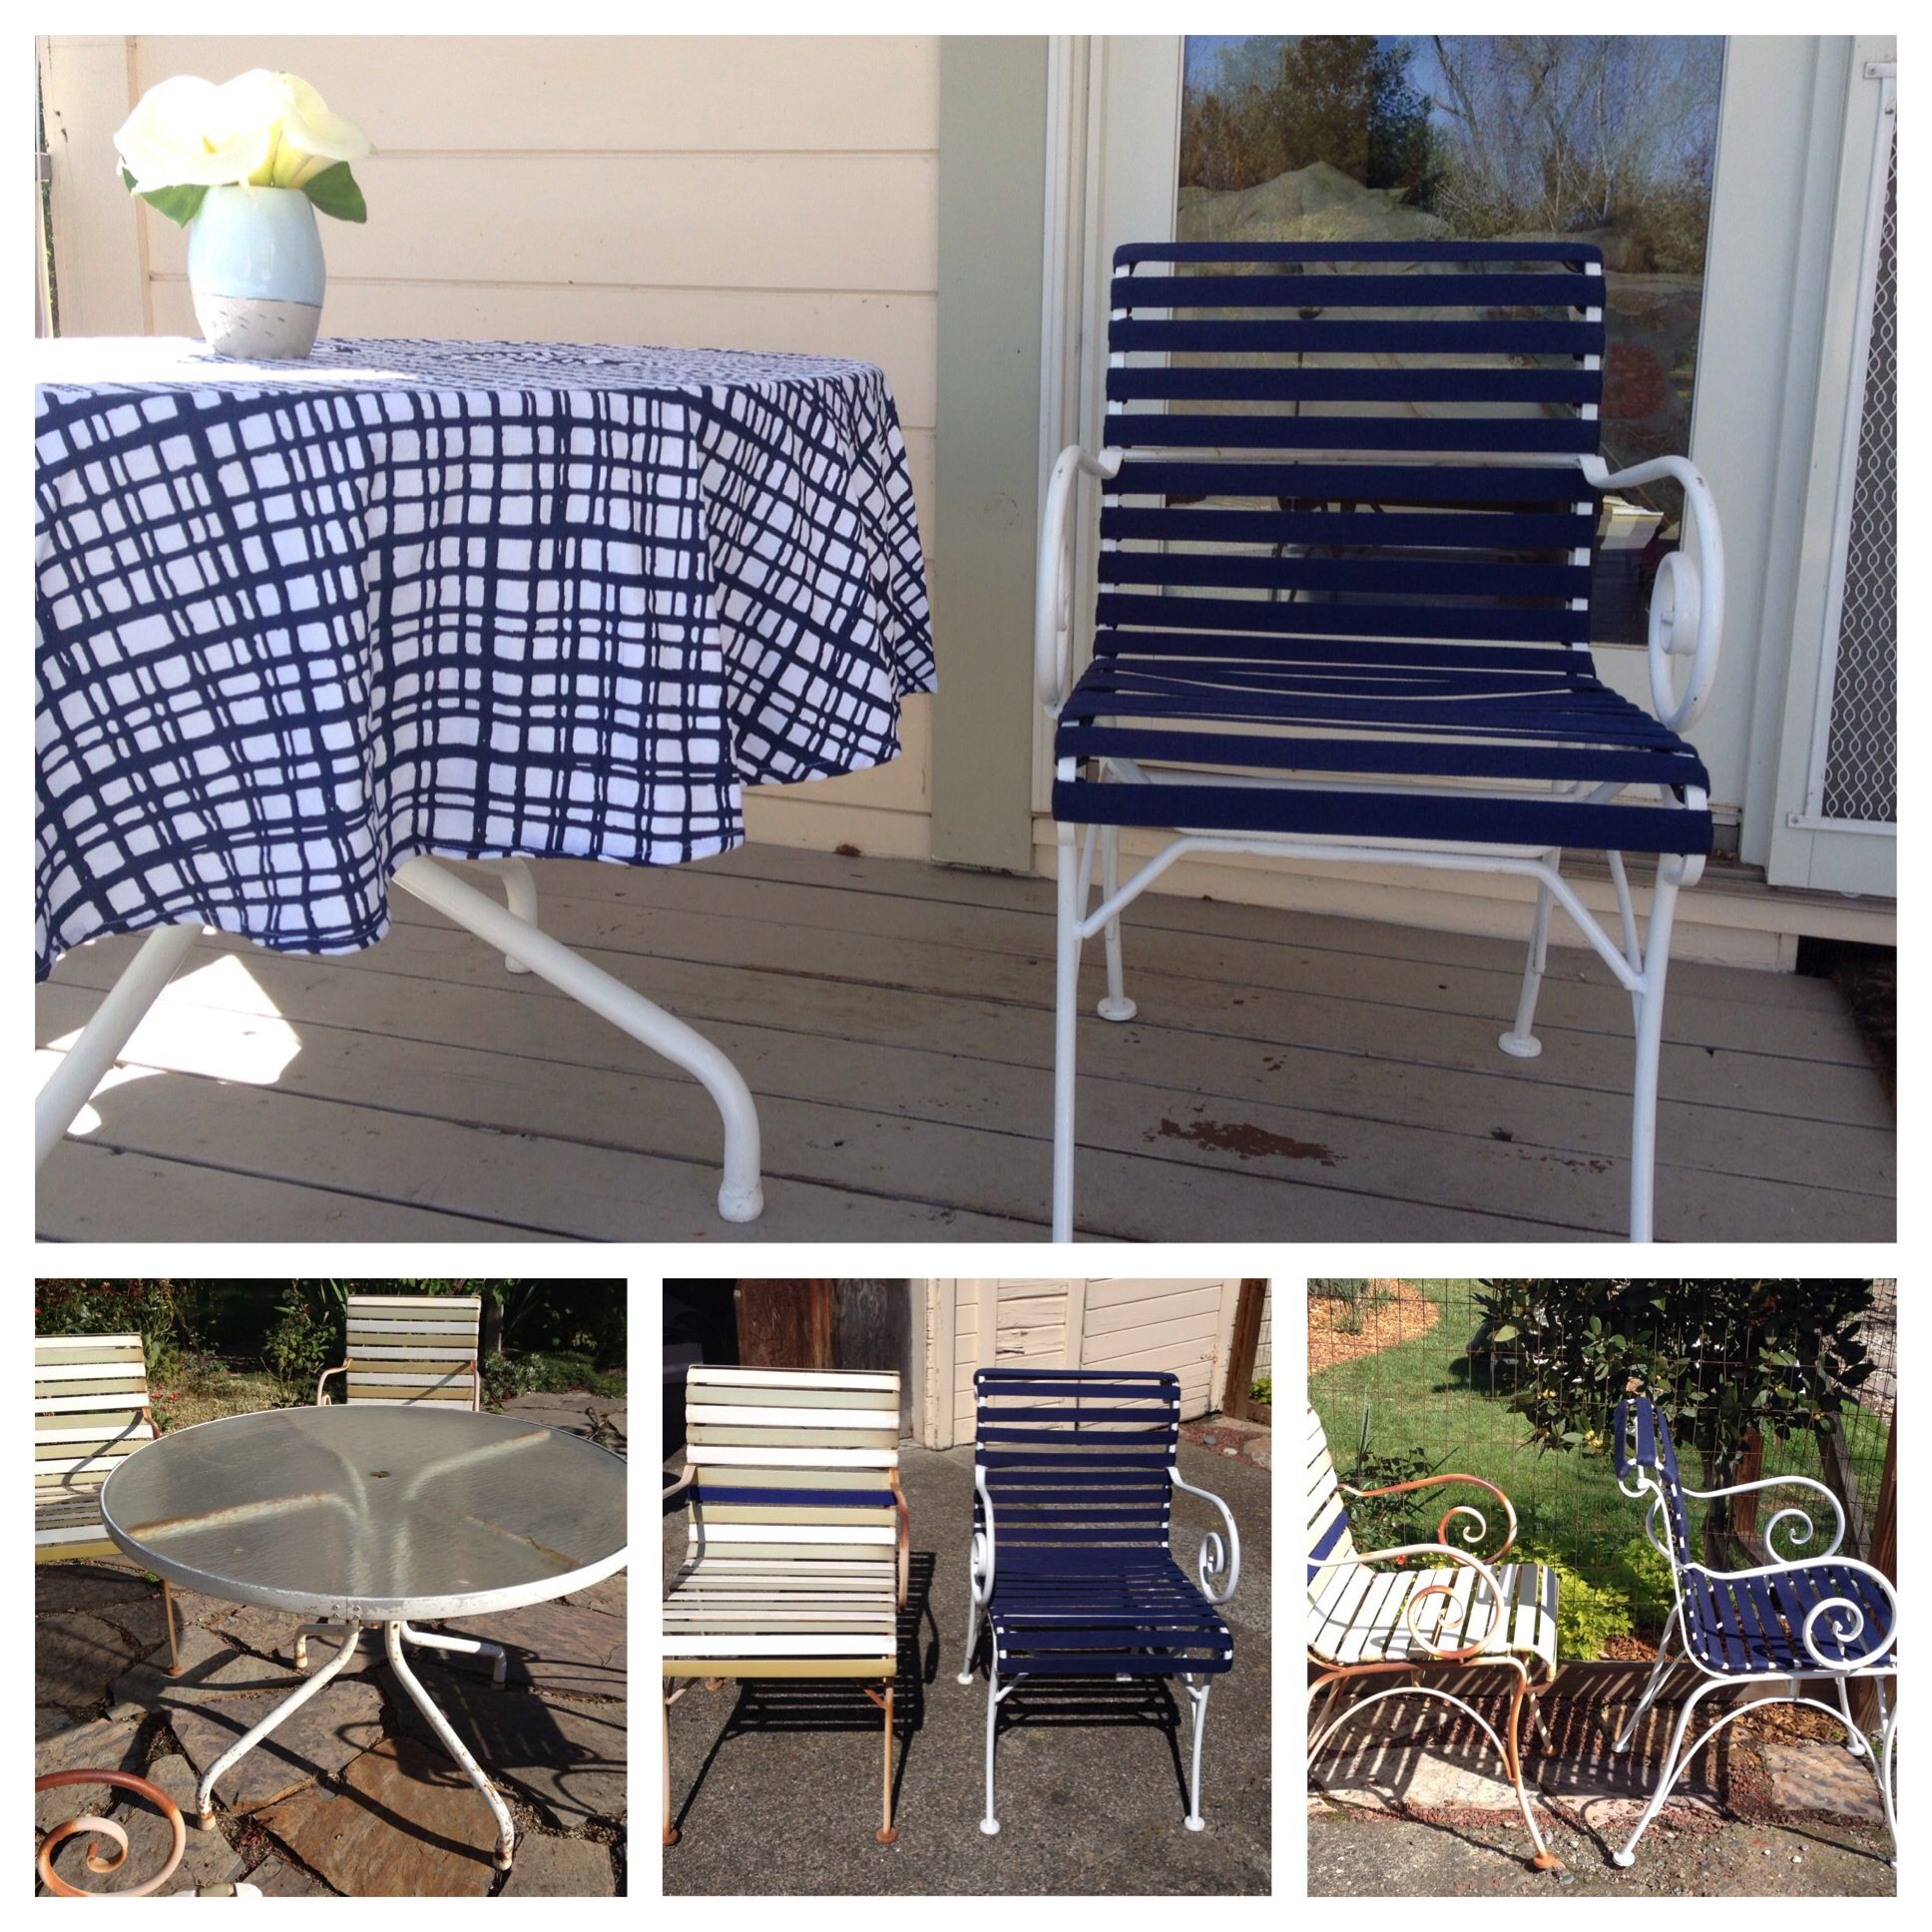 Patio Table & Chairs -. And Dated